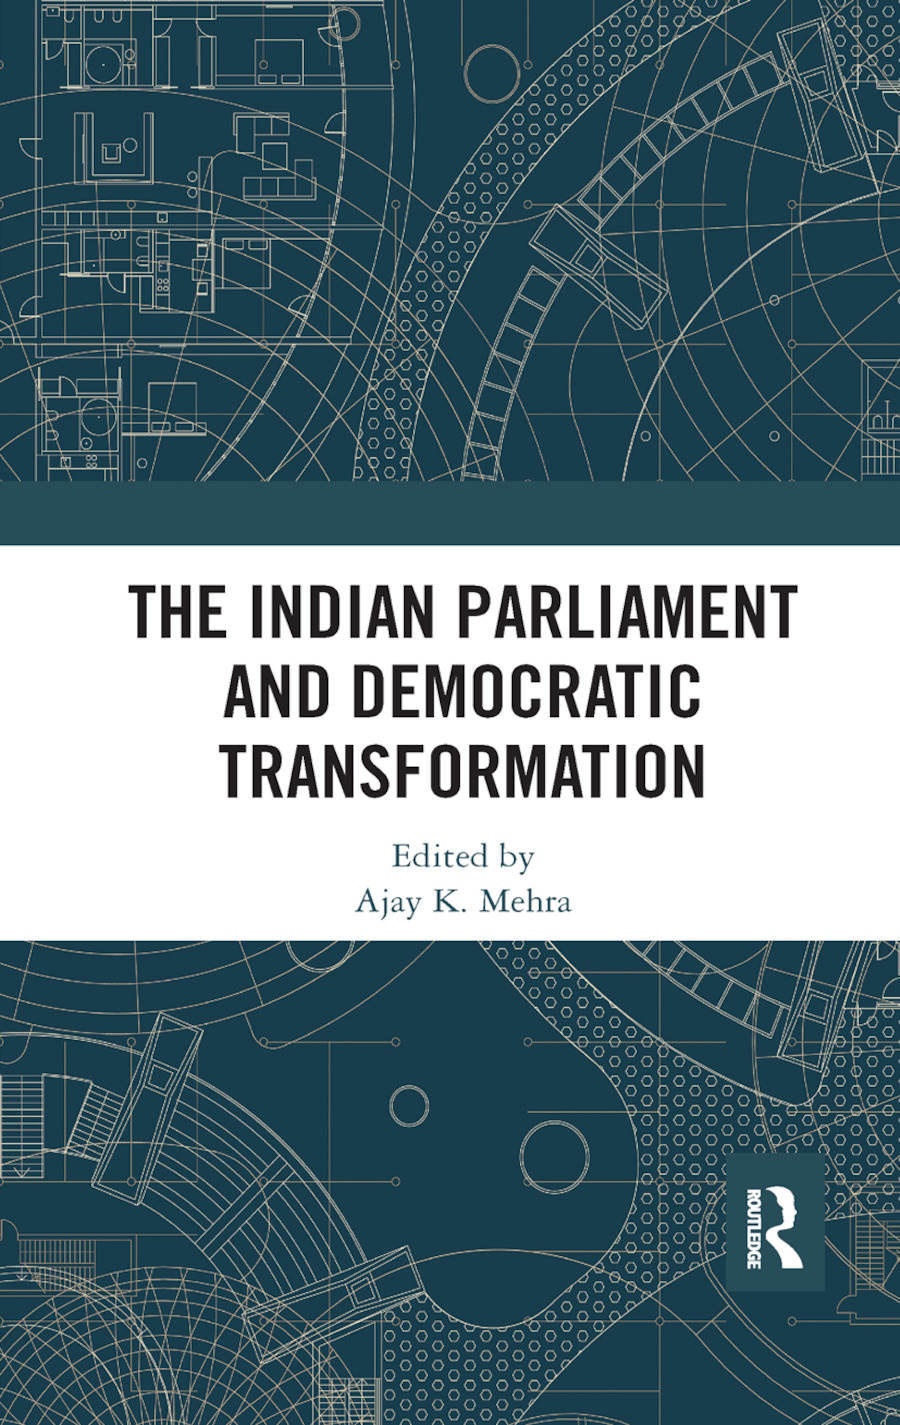 The Indian Parliament and Democratic Transformation book cover